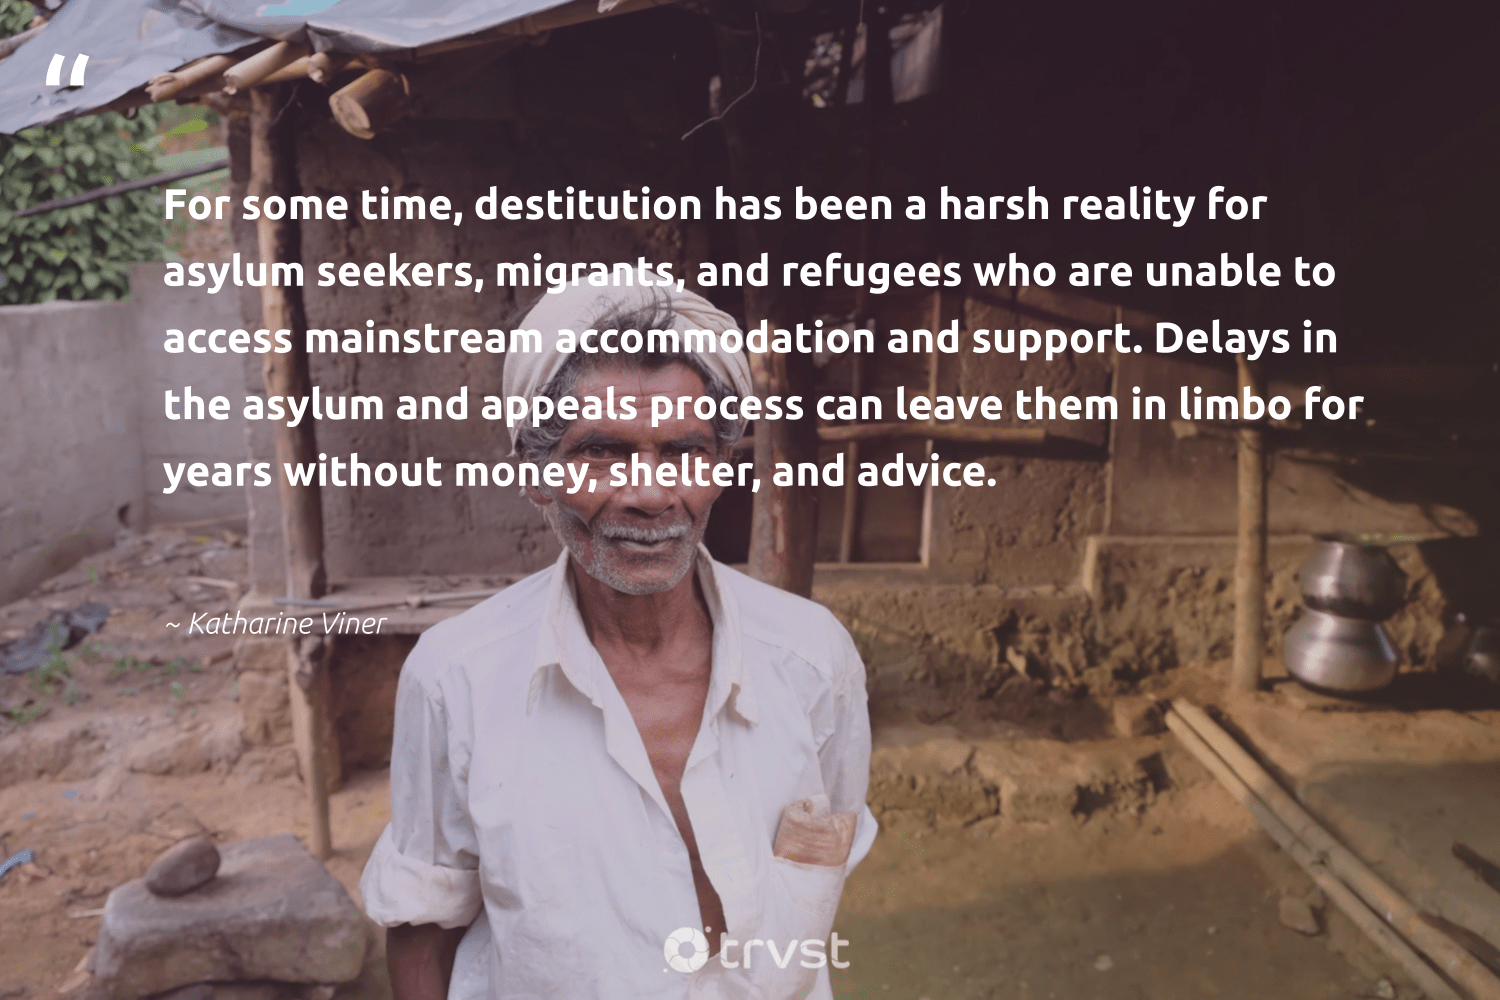 """""""For some time, destitution has been a harsh reality for asylum seekers, migrants, and refugees who are unable to access mainstream accommodation and support. Delays in the asylum and appeals process can leave them in limbo for years without money, shelter, and advice.""""  - Katharine Viner #trvst #quotes #refugees #refugeeswelcome #makeadifference #inclusion #changetheworld #refugee #sustainablefutures #weareallone #thinkgreen #syria"""